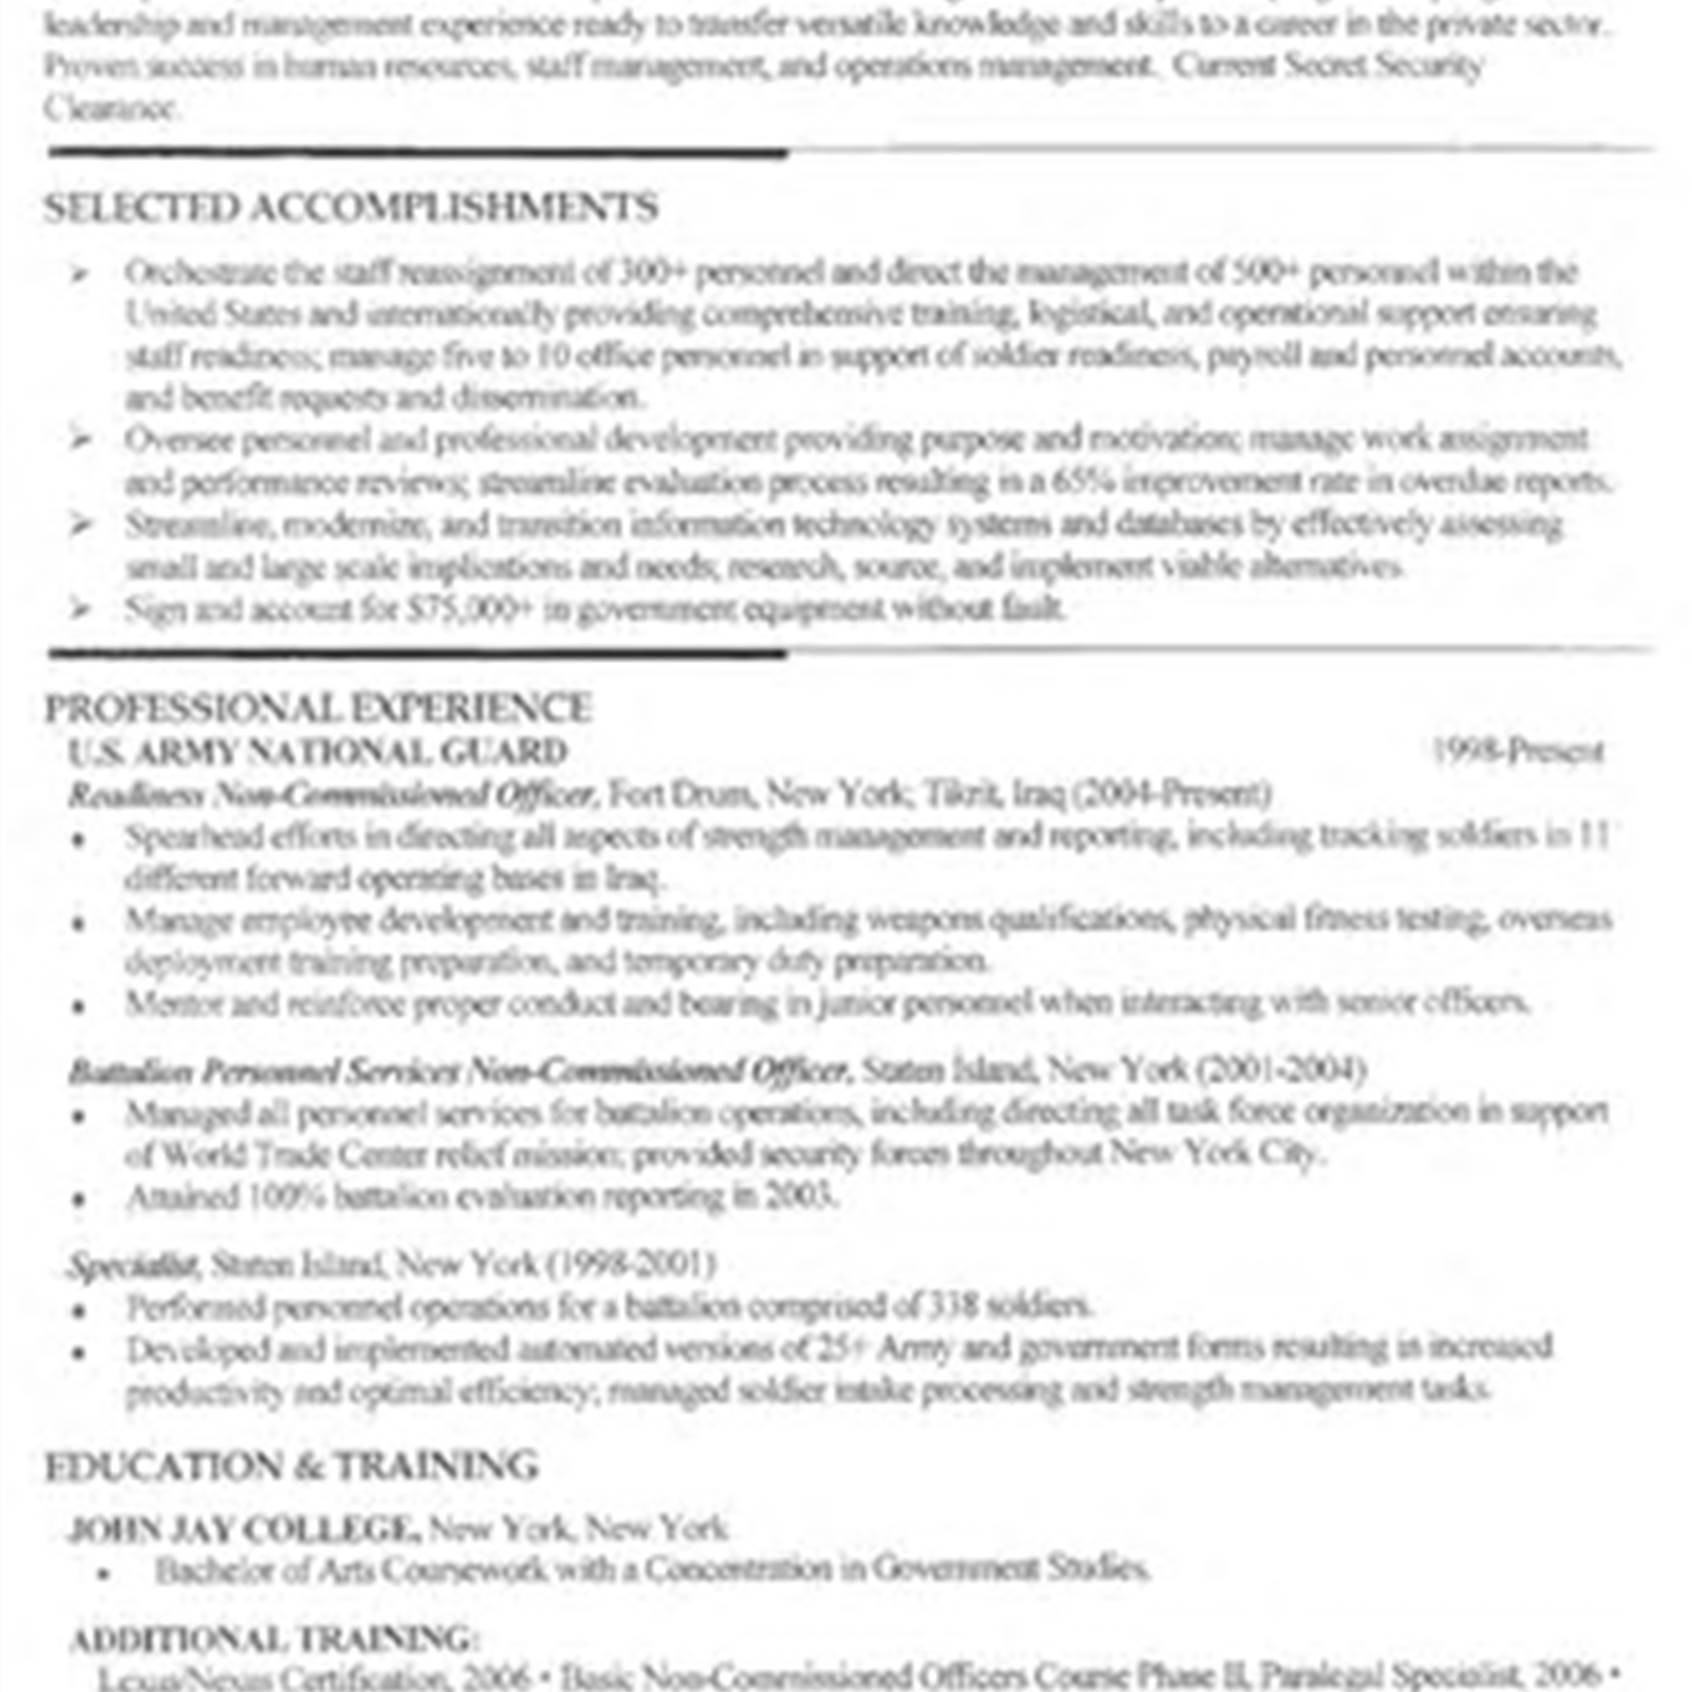 Best Professional Resume Writers - Professional Resume and Cover Letter Writing Services List Resume